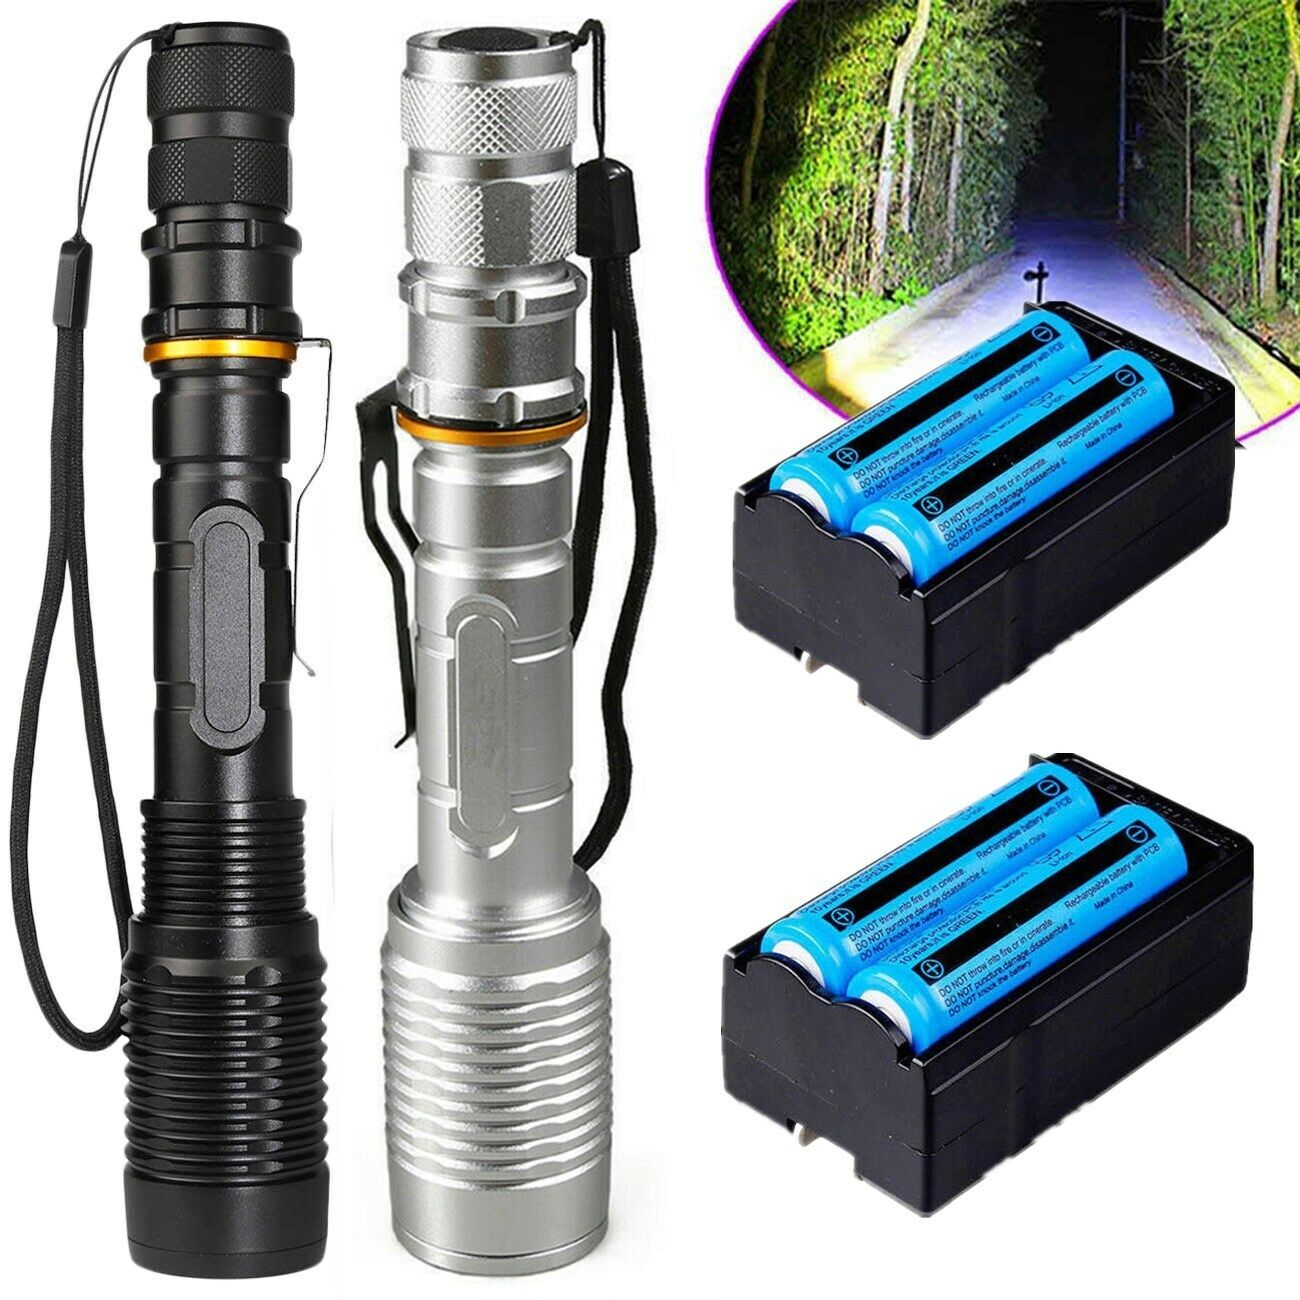 2Set Ultra Bright 990000LM Flashlight LED Light Tactical Rechargeable Torch Lamp